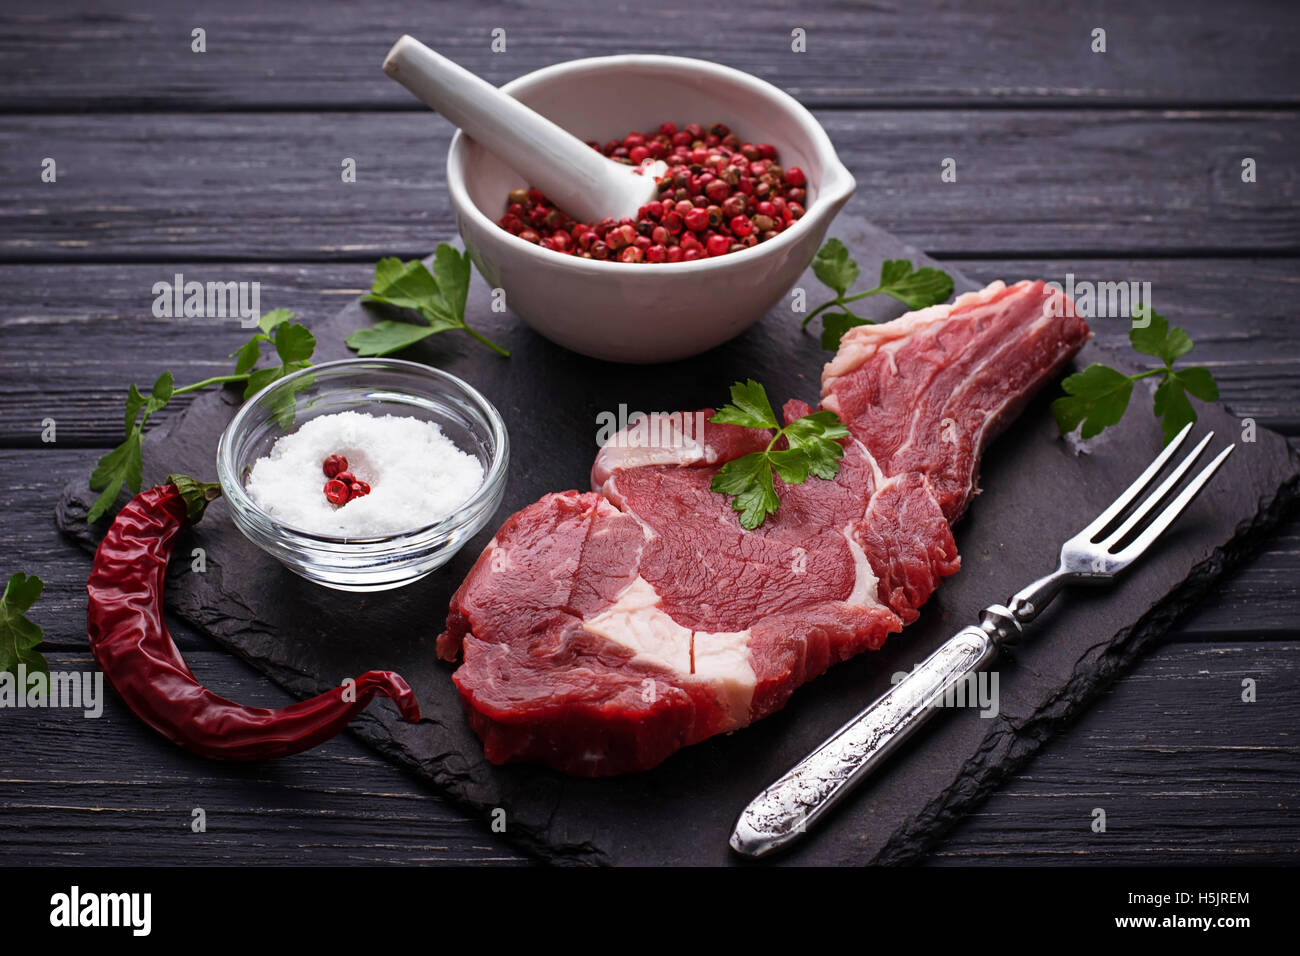 Raw meat steak entrecote. Selective focus - Stock Image